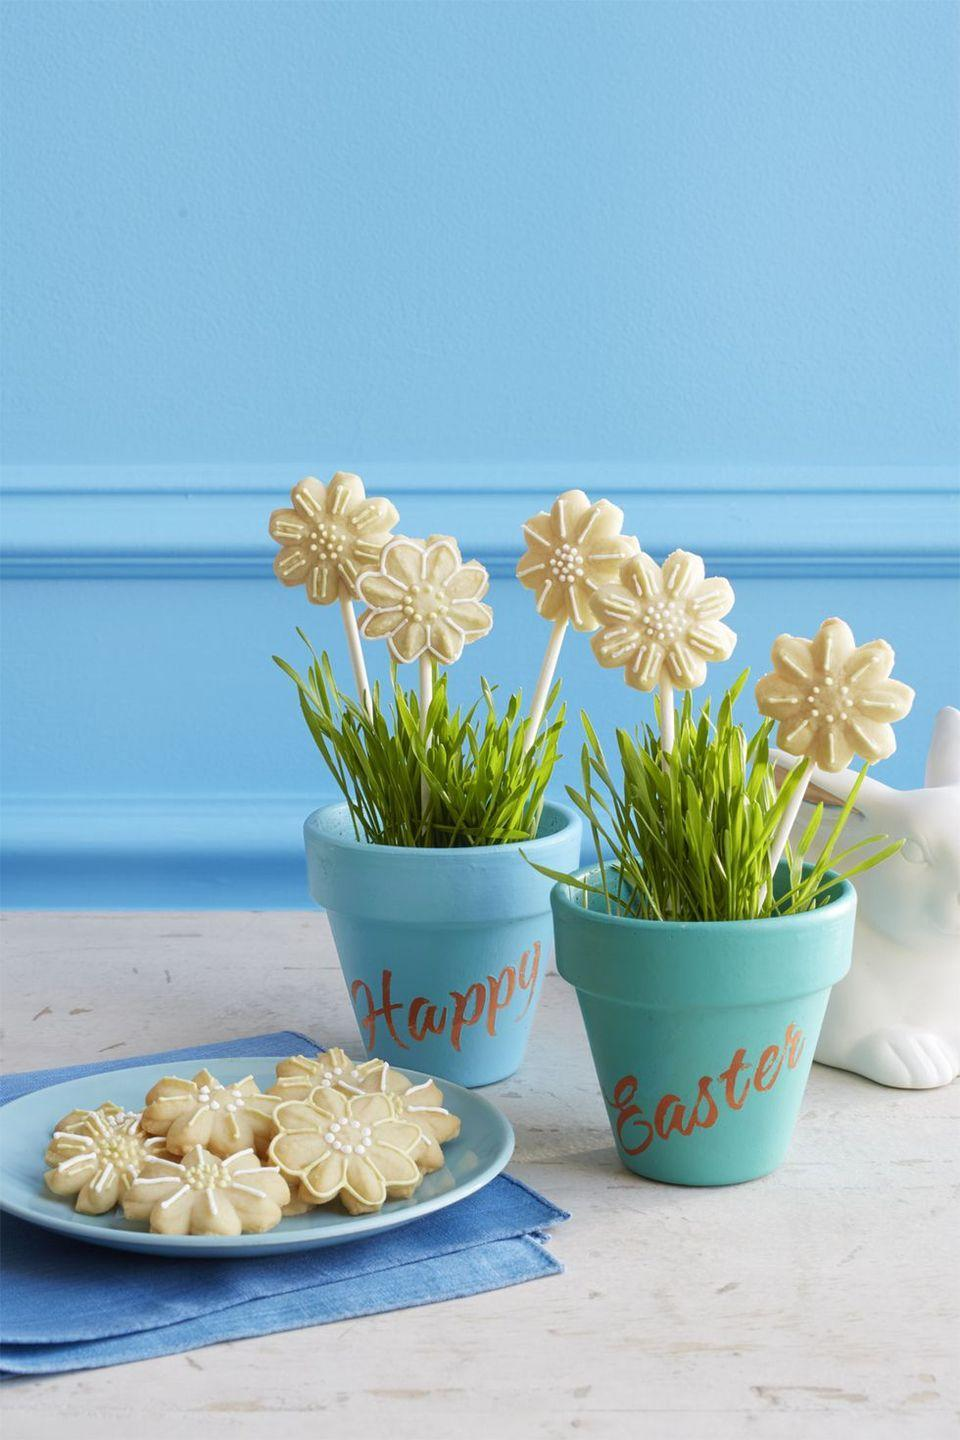 "<p>These easy to make spring treats can double as table decorations.</p><p><strong><em><a href=""https://www.womansday.com/food-recipes/food-drinks/recipes/a58136/spritz-daisy-cookies-recipe/"" rel=""nofollow noopener"" target=""_blank"" data-ylk=""slk:Get the Spritz Daisy Cookies recipe."" class=""link rapid-noclick-resp"">Get the Spritz Daisy Cookies recipe.</a></em></strong></p>"